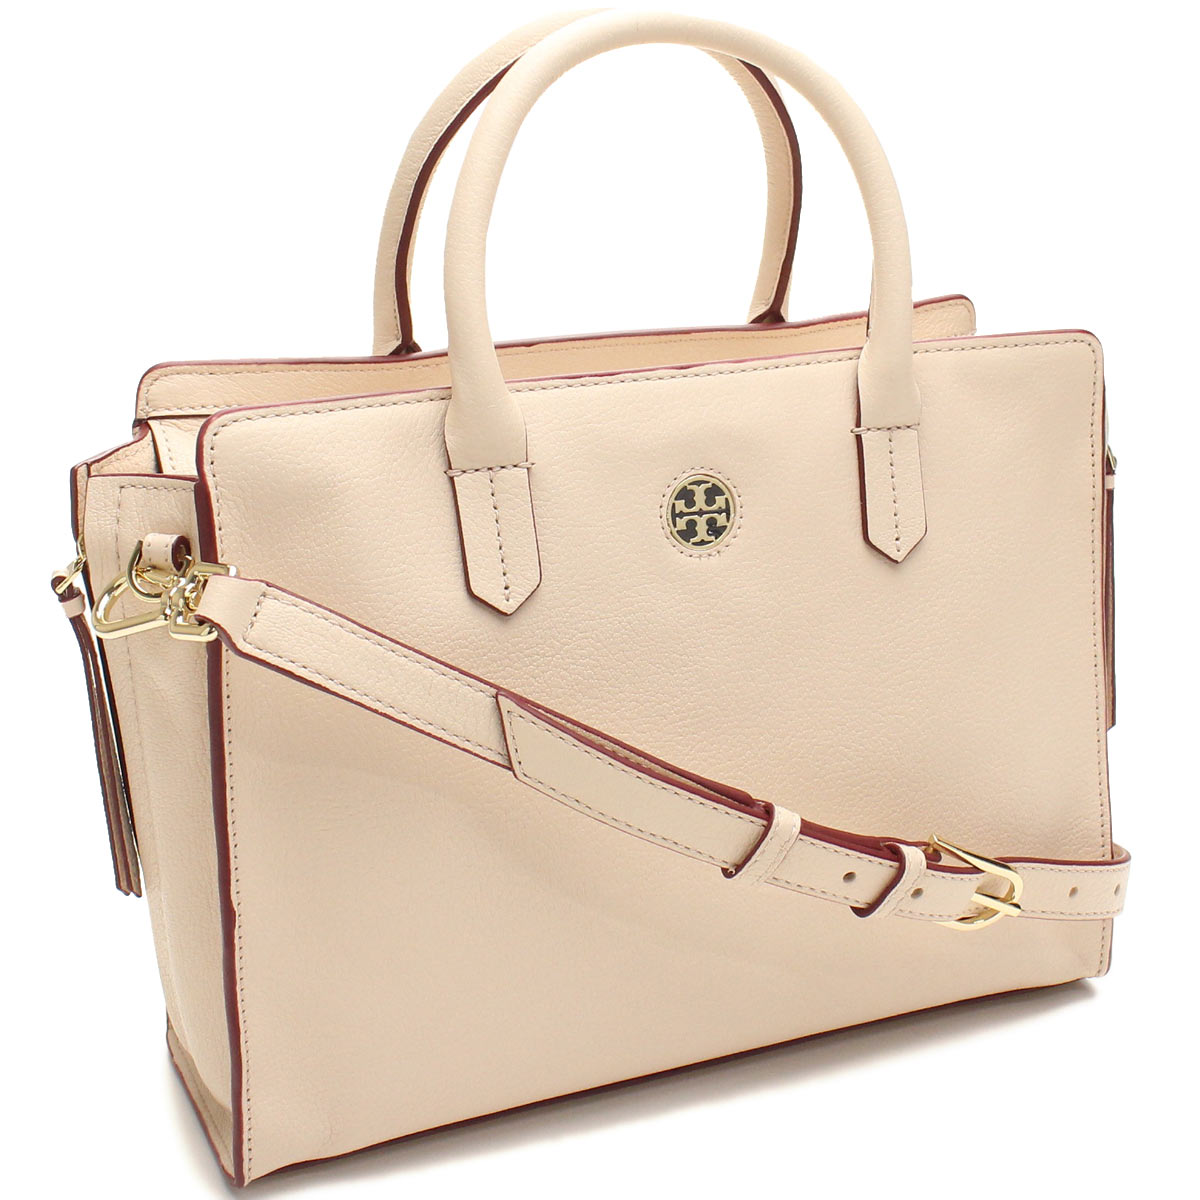 Hit The Total Brand Whole Tory Burch Tote Bag 41159726 205 Pink Light Oak Taxfree Send By Ems Authentic A New Item Rakuten